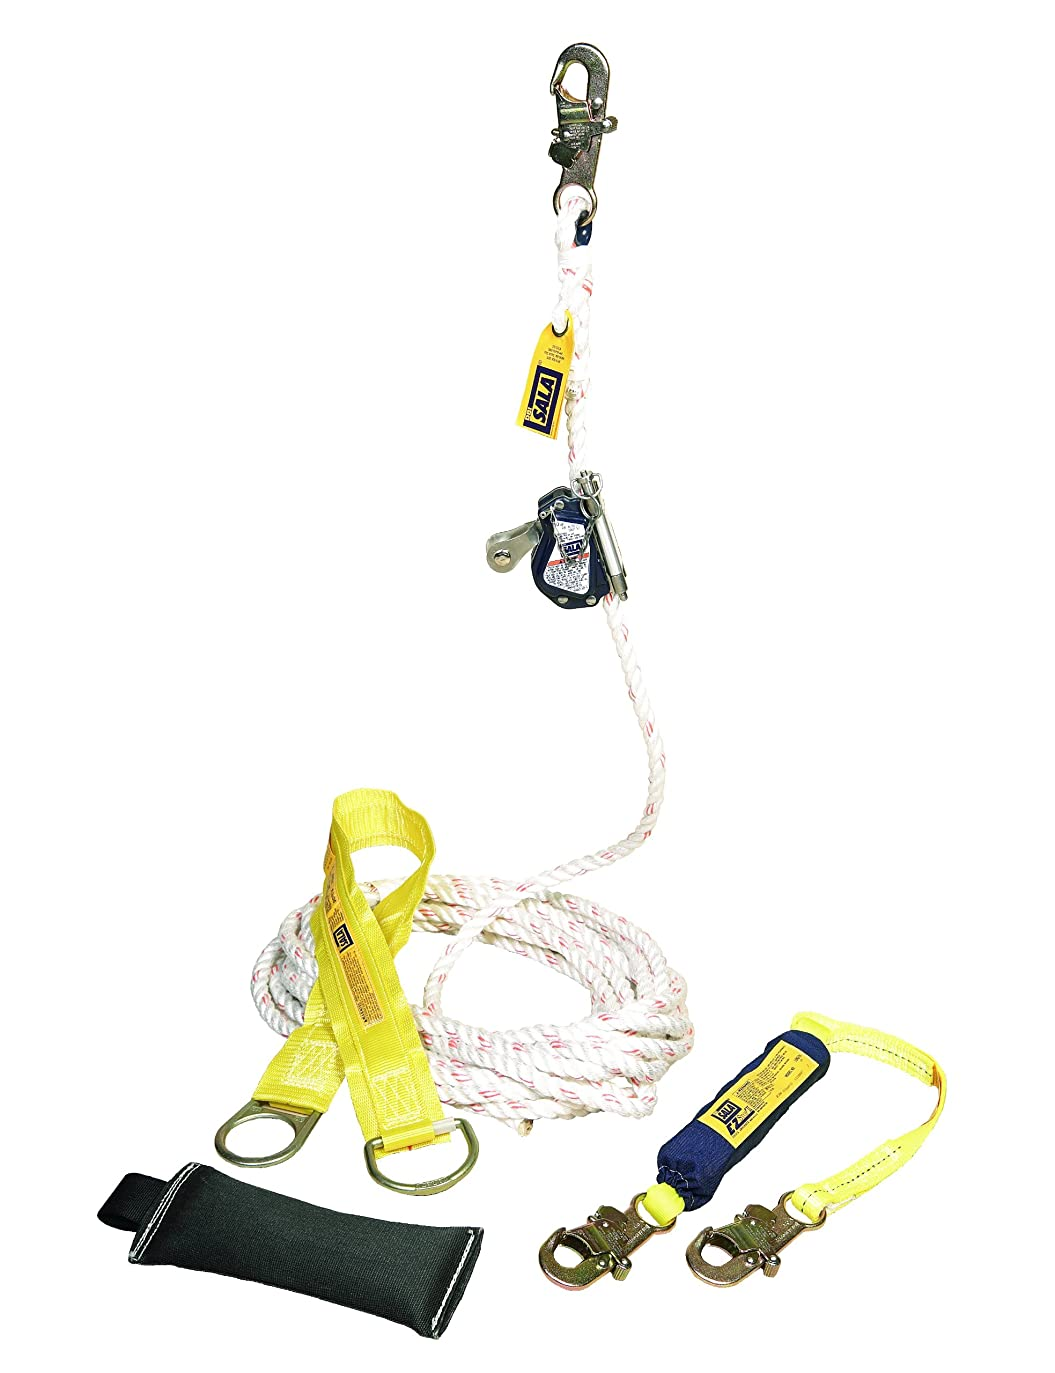 無駄だ湾自明3M DBI-SALA 5000401 Mobile Rope Grab Kit, Rope Grab, 3-Foot Shock Absorbing Lanyard, 100-Foot Rope Lifeline, Counterweight, Tie-Off Adaptor, And Carrying Bag by 3M Fall Protection Business